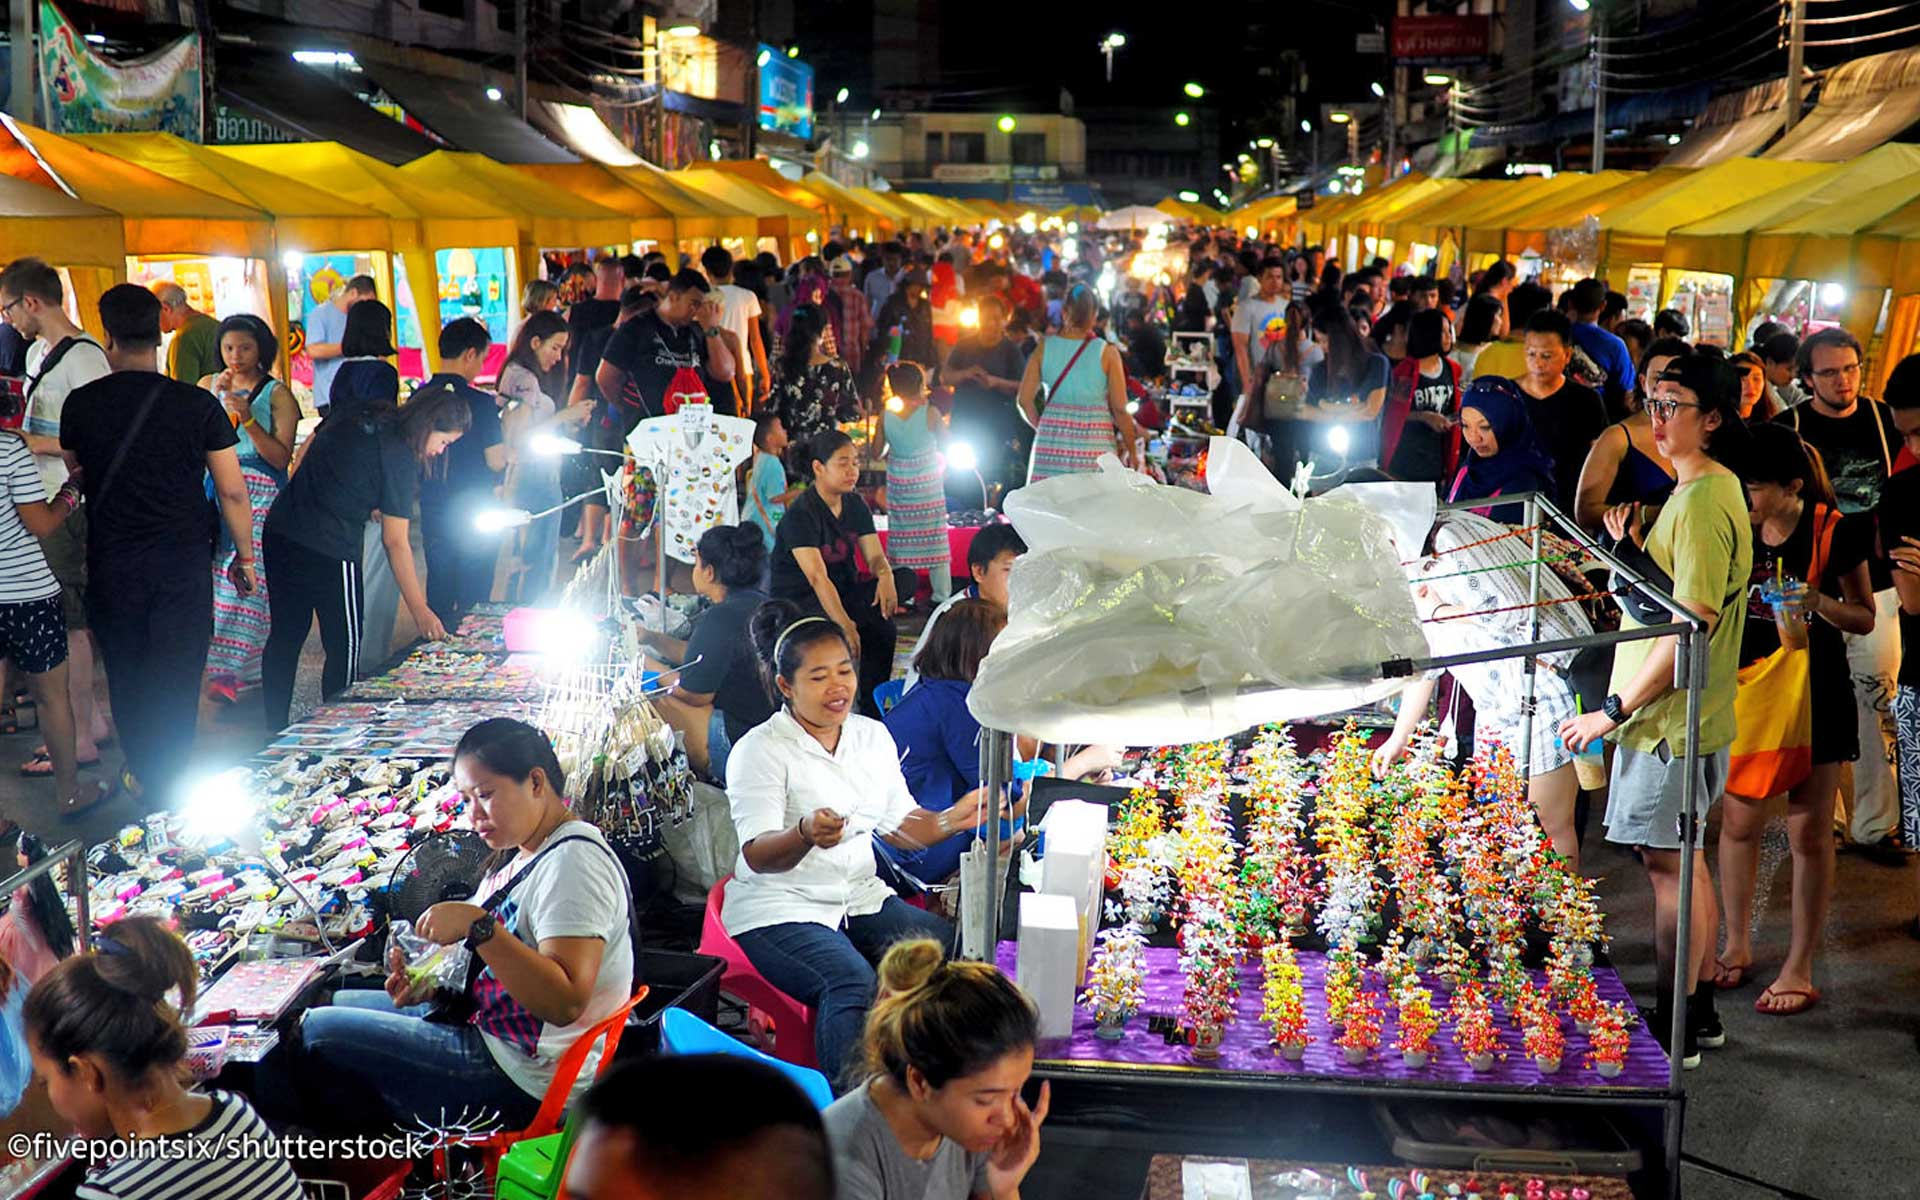 The hustle and bustle atmosphere at Hoi An Night Market.